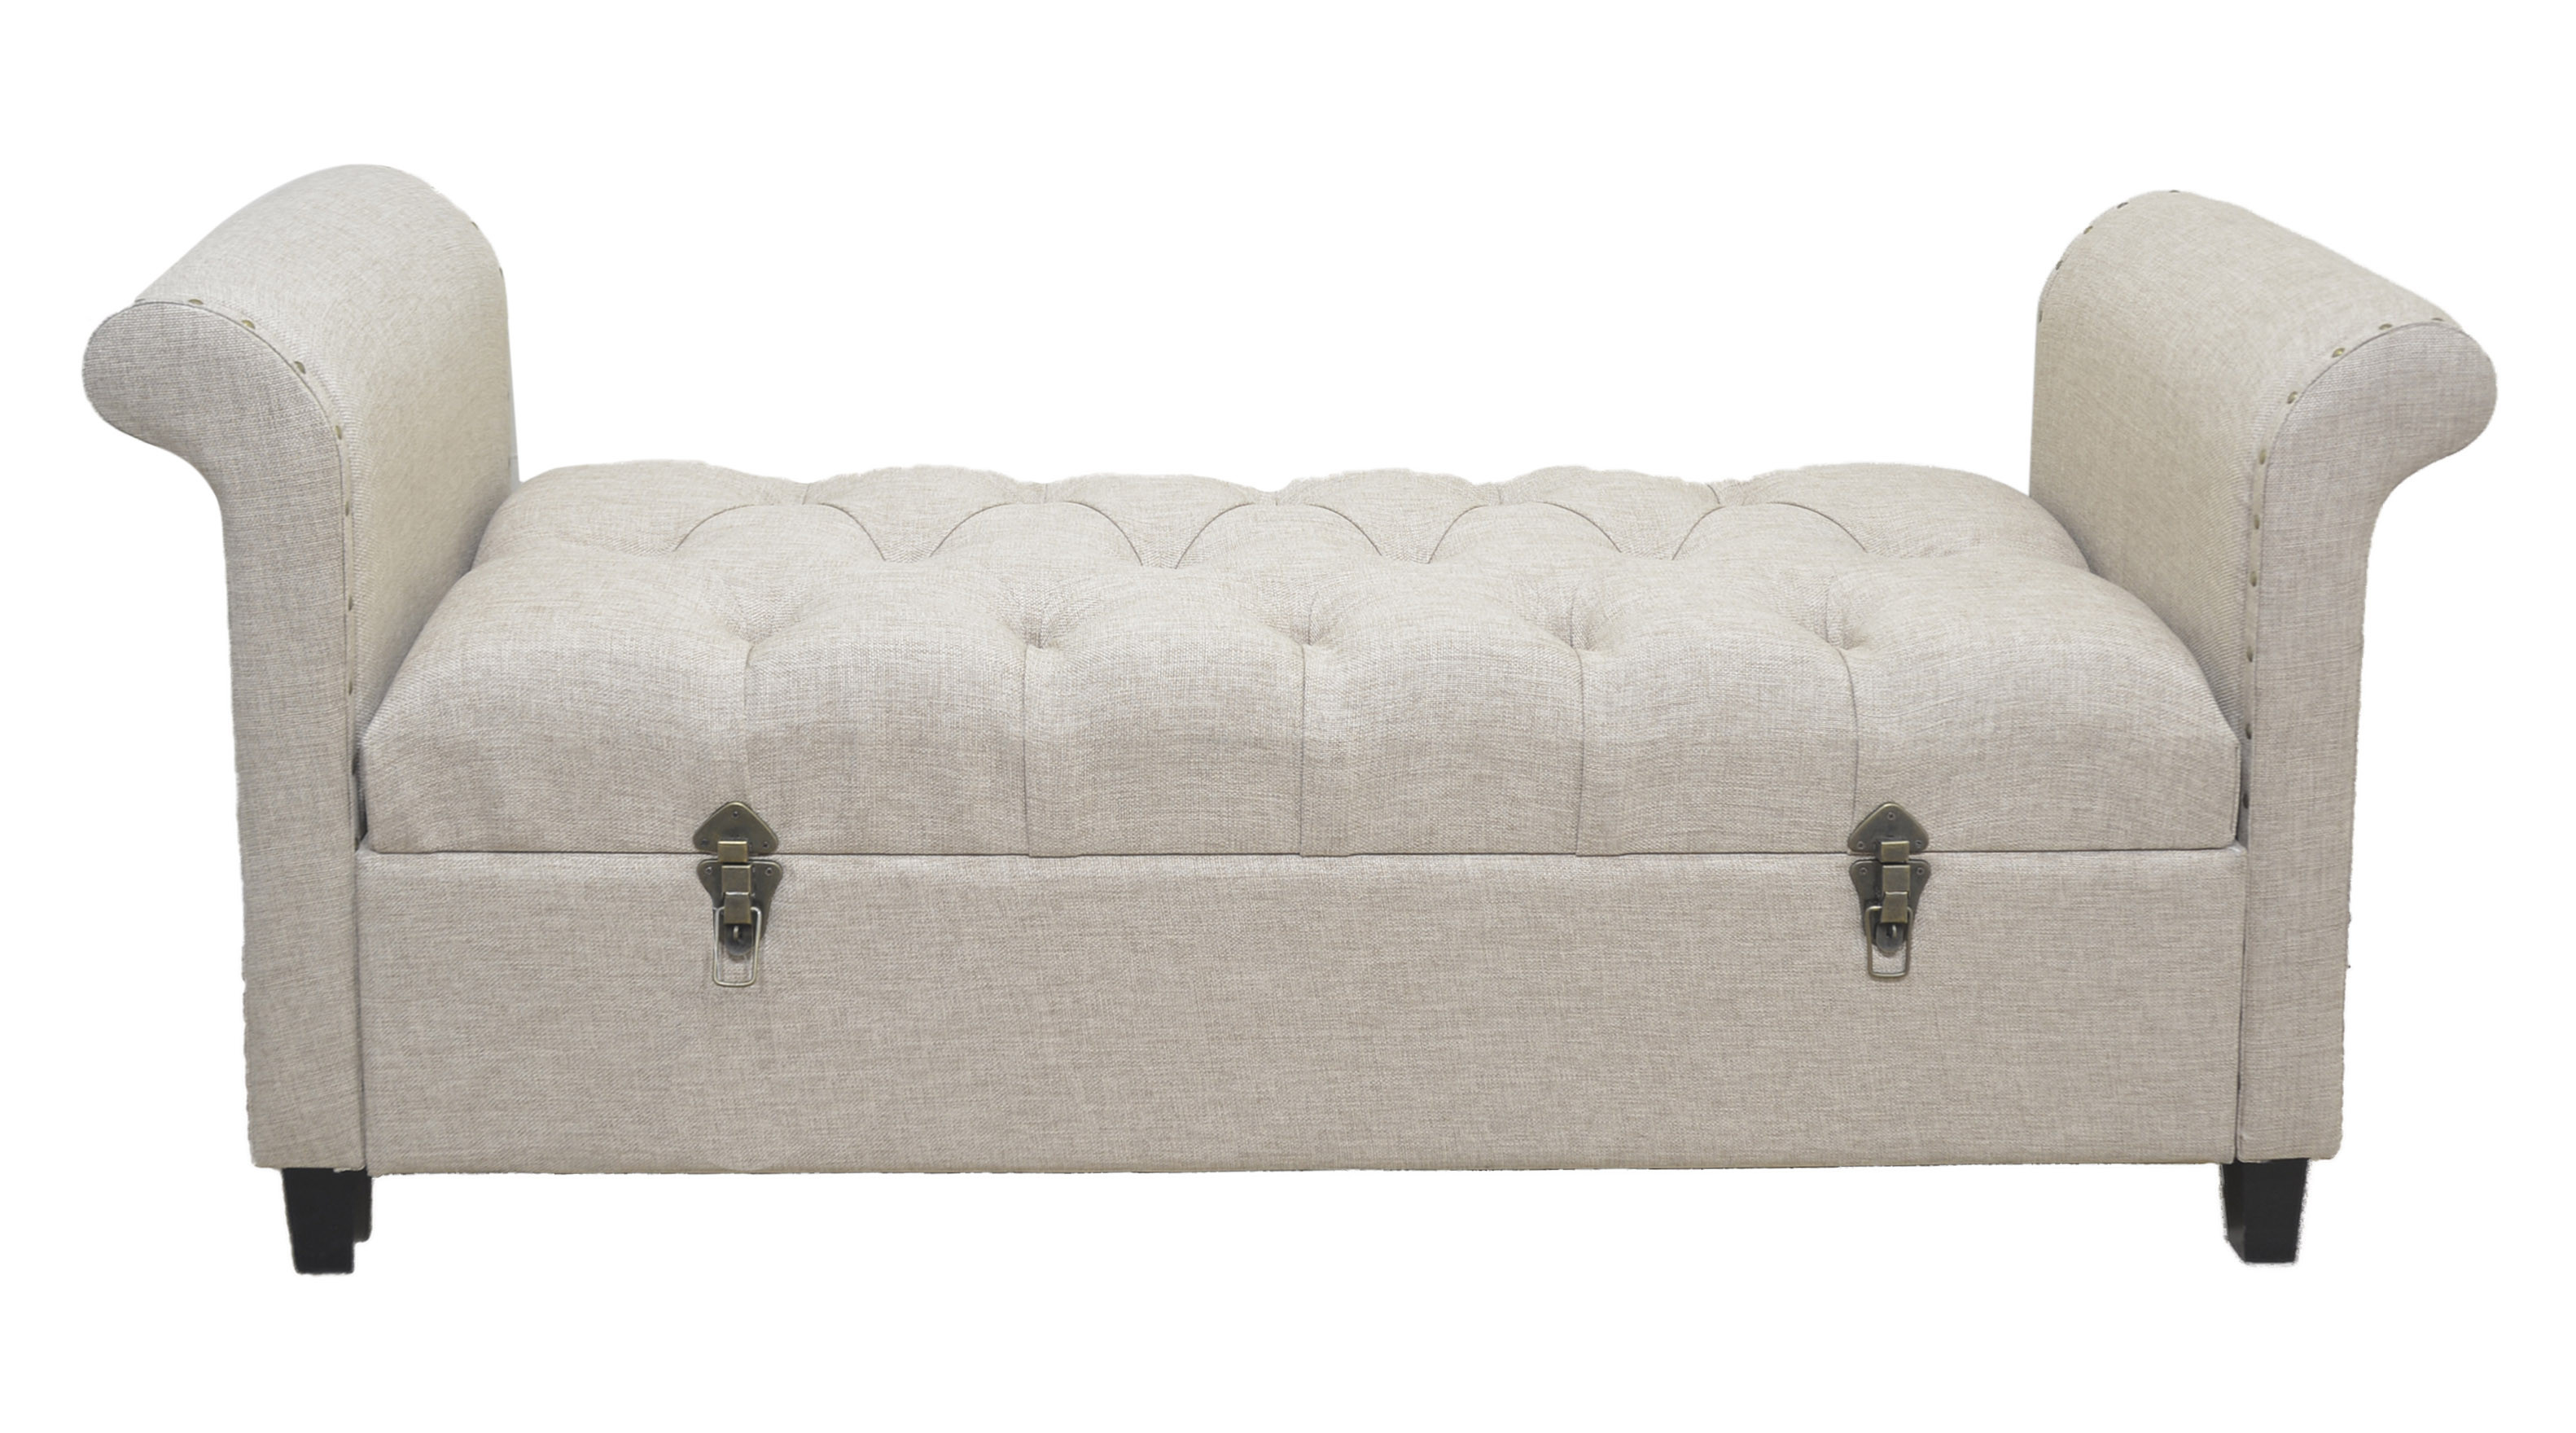 Descalzador furniture upholstered wooden structure Lino Brown `` Capitone'' with internal chest (137x46x60)